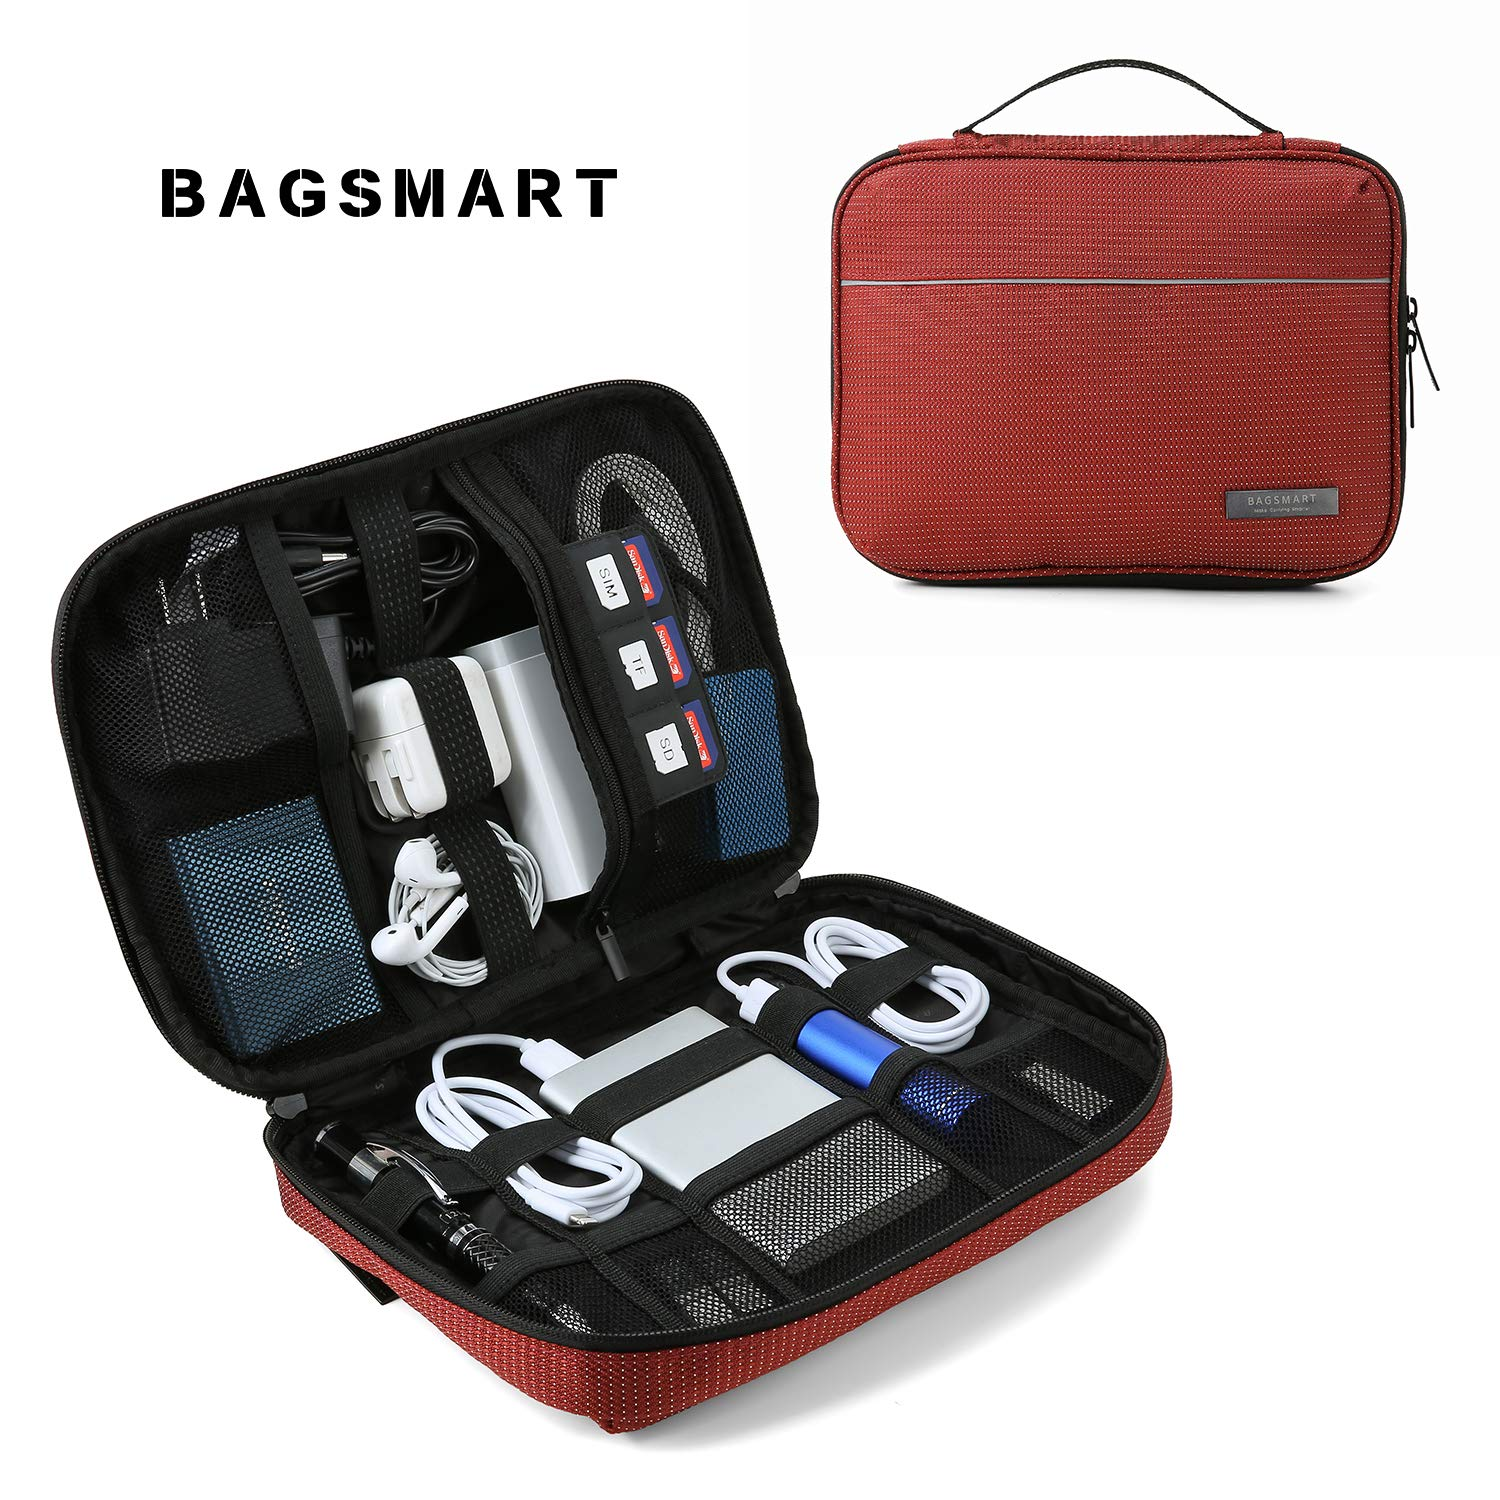 BAGSMART Travel Cable Organizer Cases Electronics Accessories Storage Bag for Hard Drives, Cables, Charger, Red